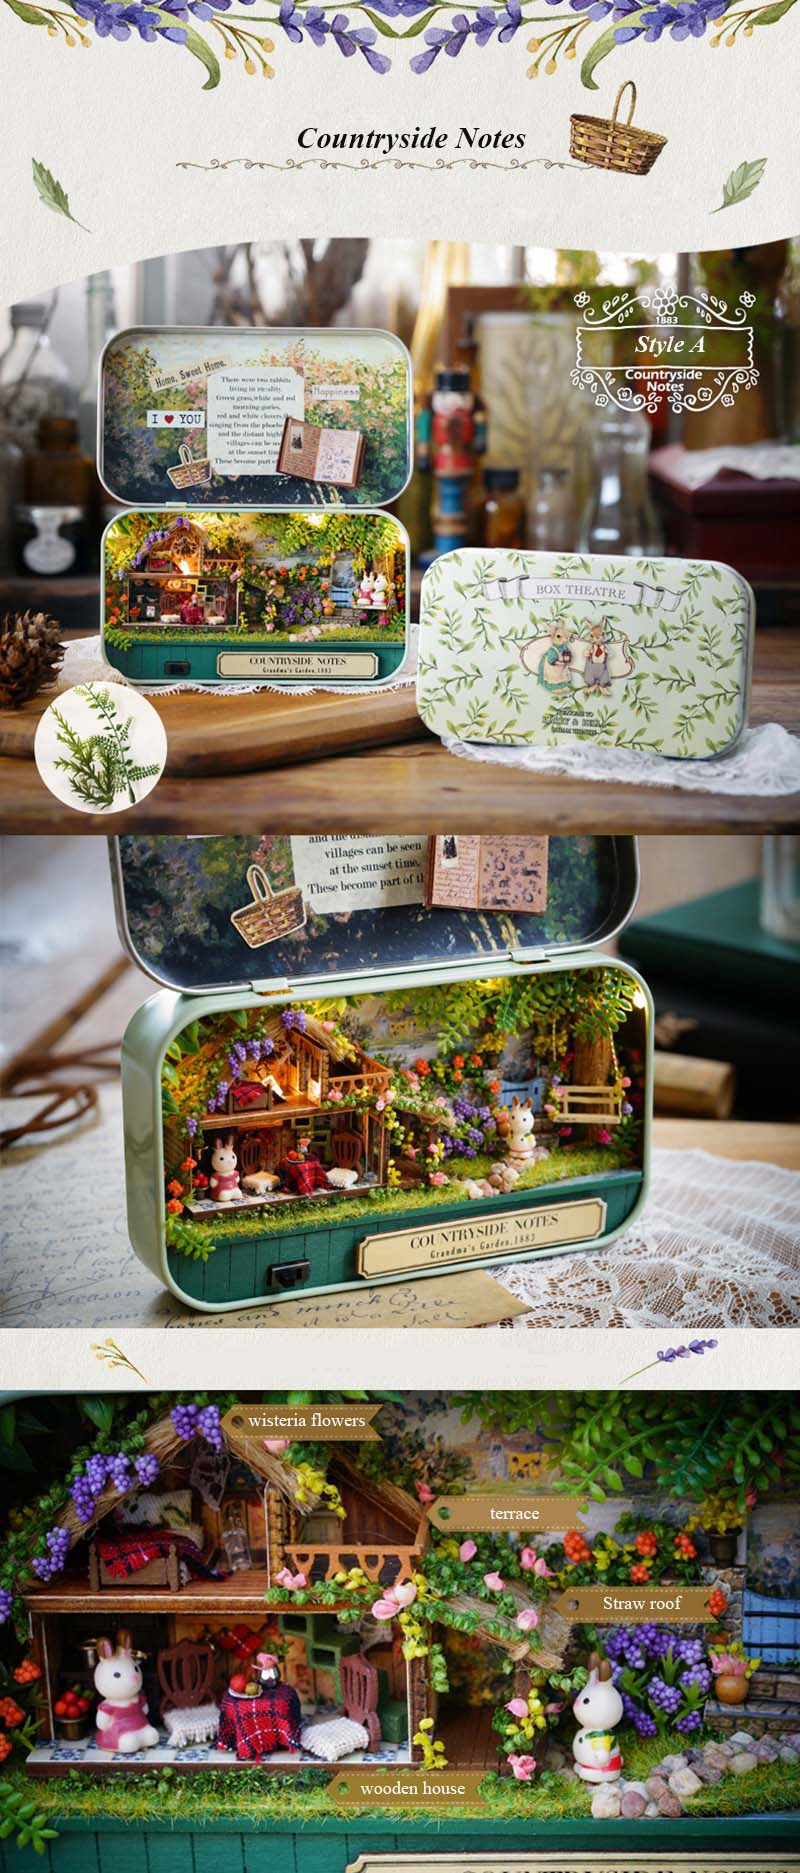 Funny Countryside Notes 3D Wooden DIY Handmade Box Theatre Dollhouse Miniature Box Cute Mini Doll House Assemble Kits Gift Toys (4)